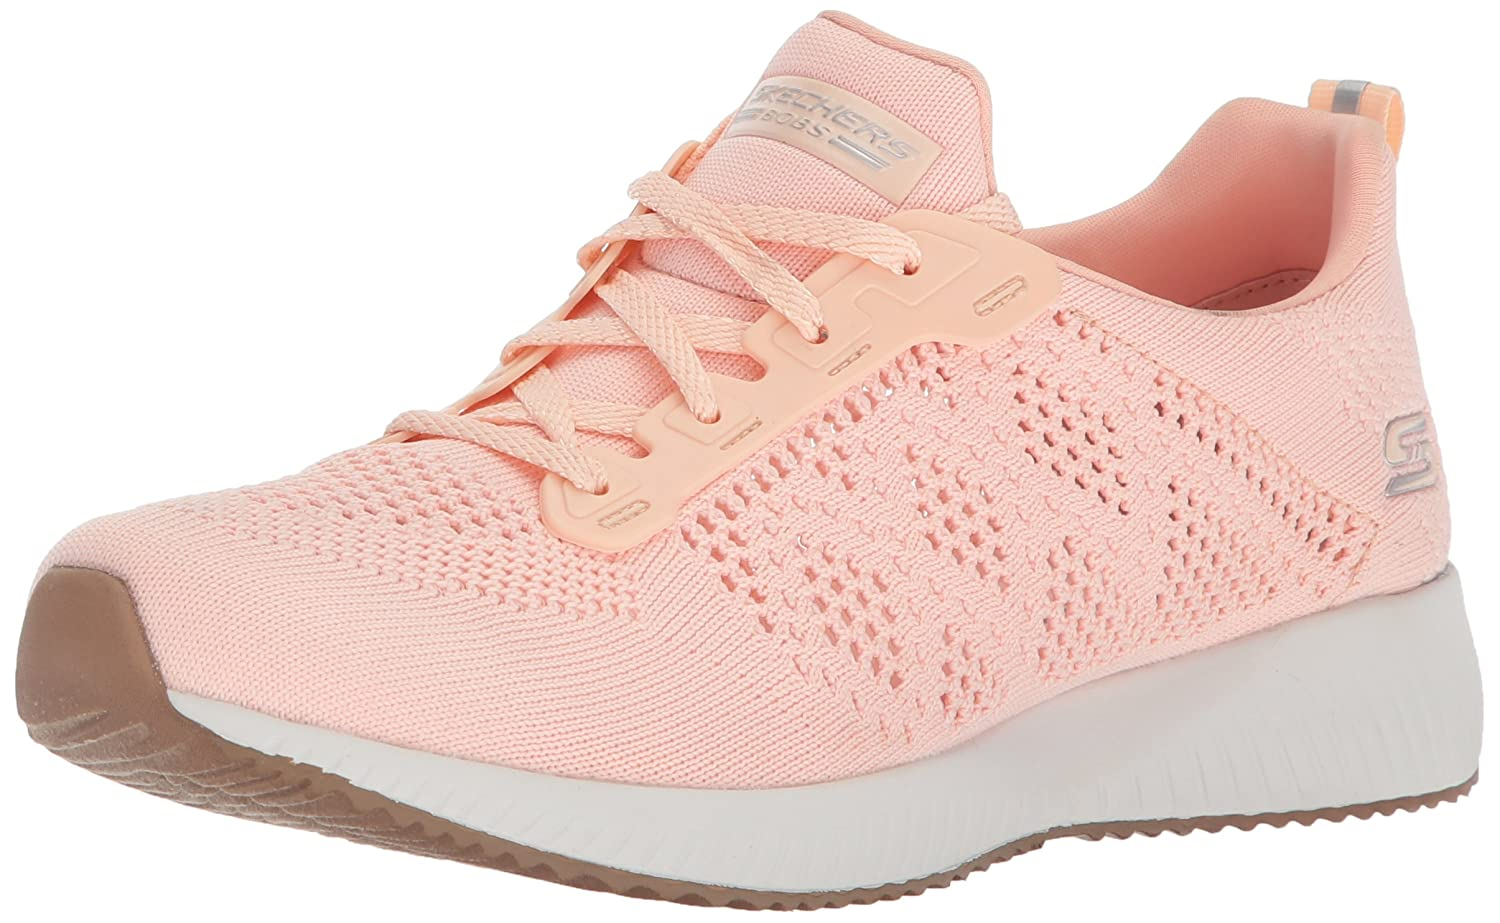 Skechers BOBS from Women's Bobs Squad-Open Weave Sneaker B071G3VVNR 7 B(M) US|Light Pink